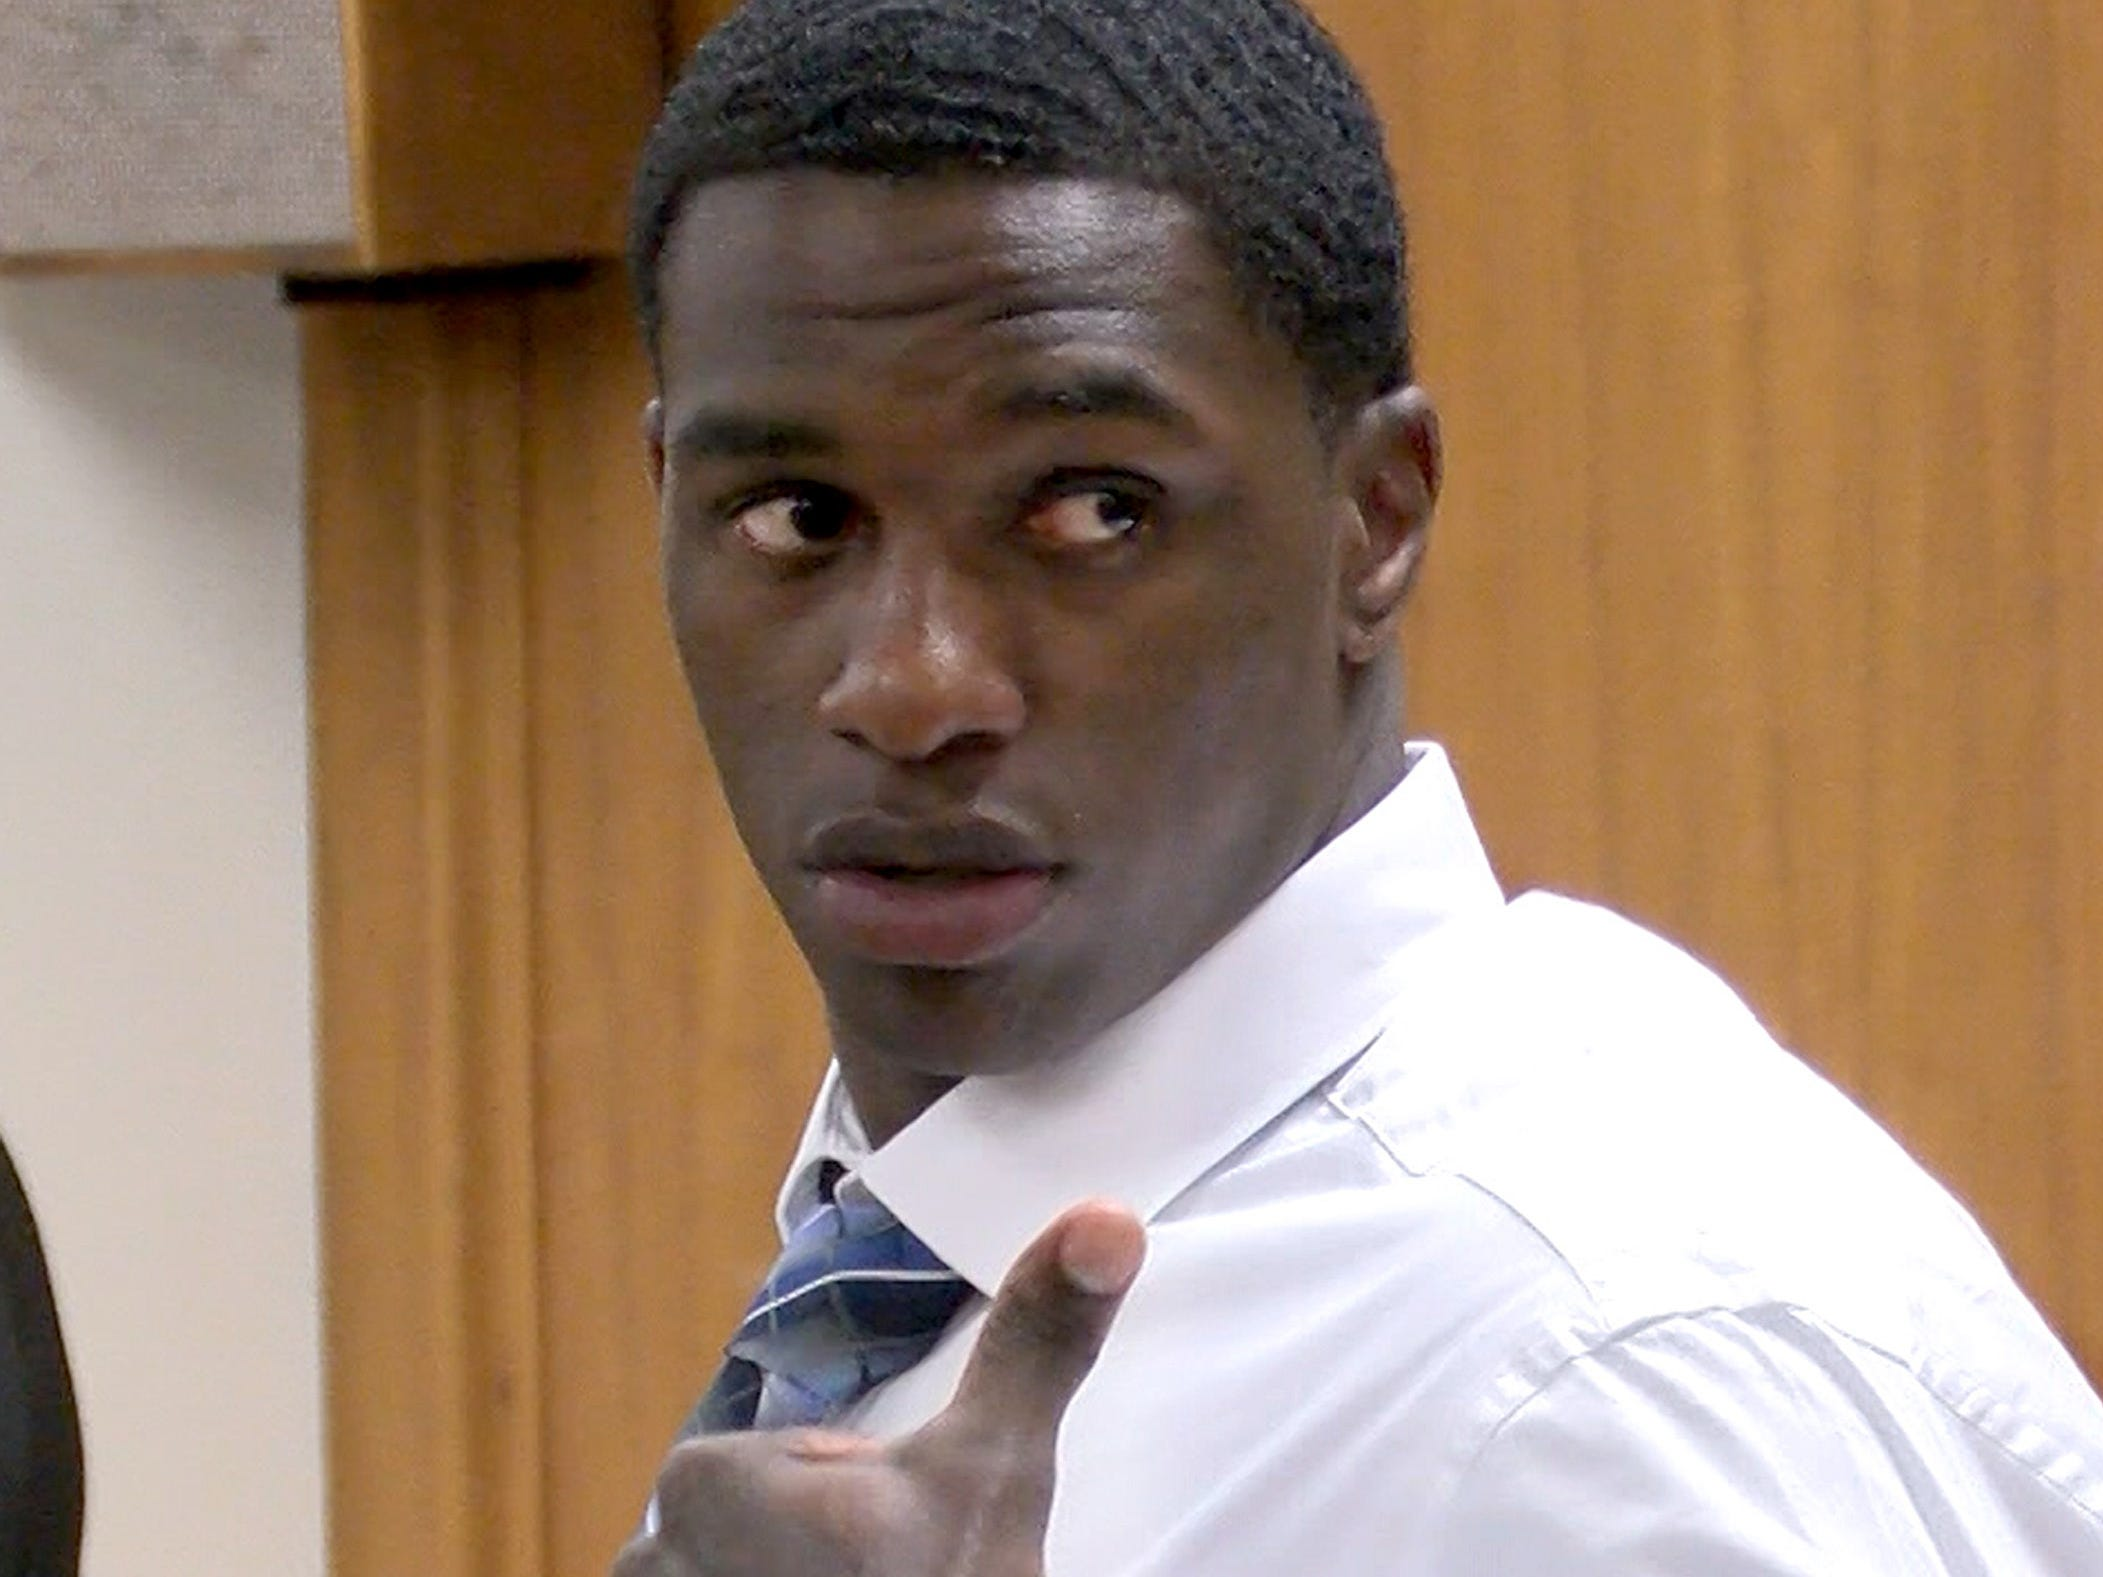 Dante Allen gives a thumbs up to people in the gallery during his attempted murder trial in State Superior Court in Freehold Tuesday, April 30, 2019.  He is charged with shooting at Asbury Park police Officer Terrance McGhee during a foot chase.